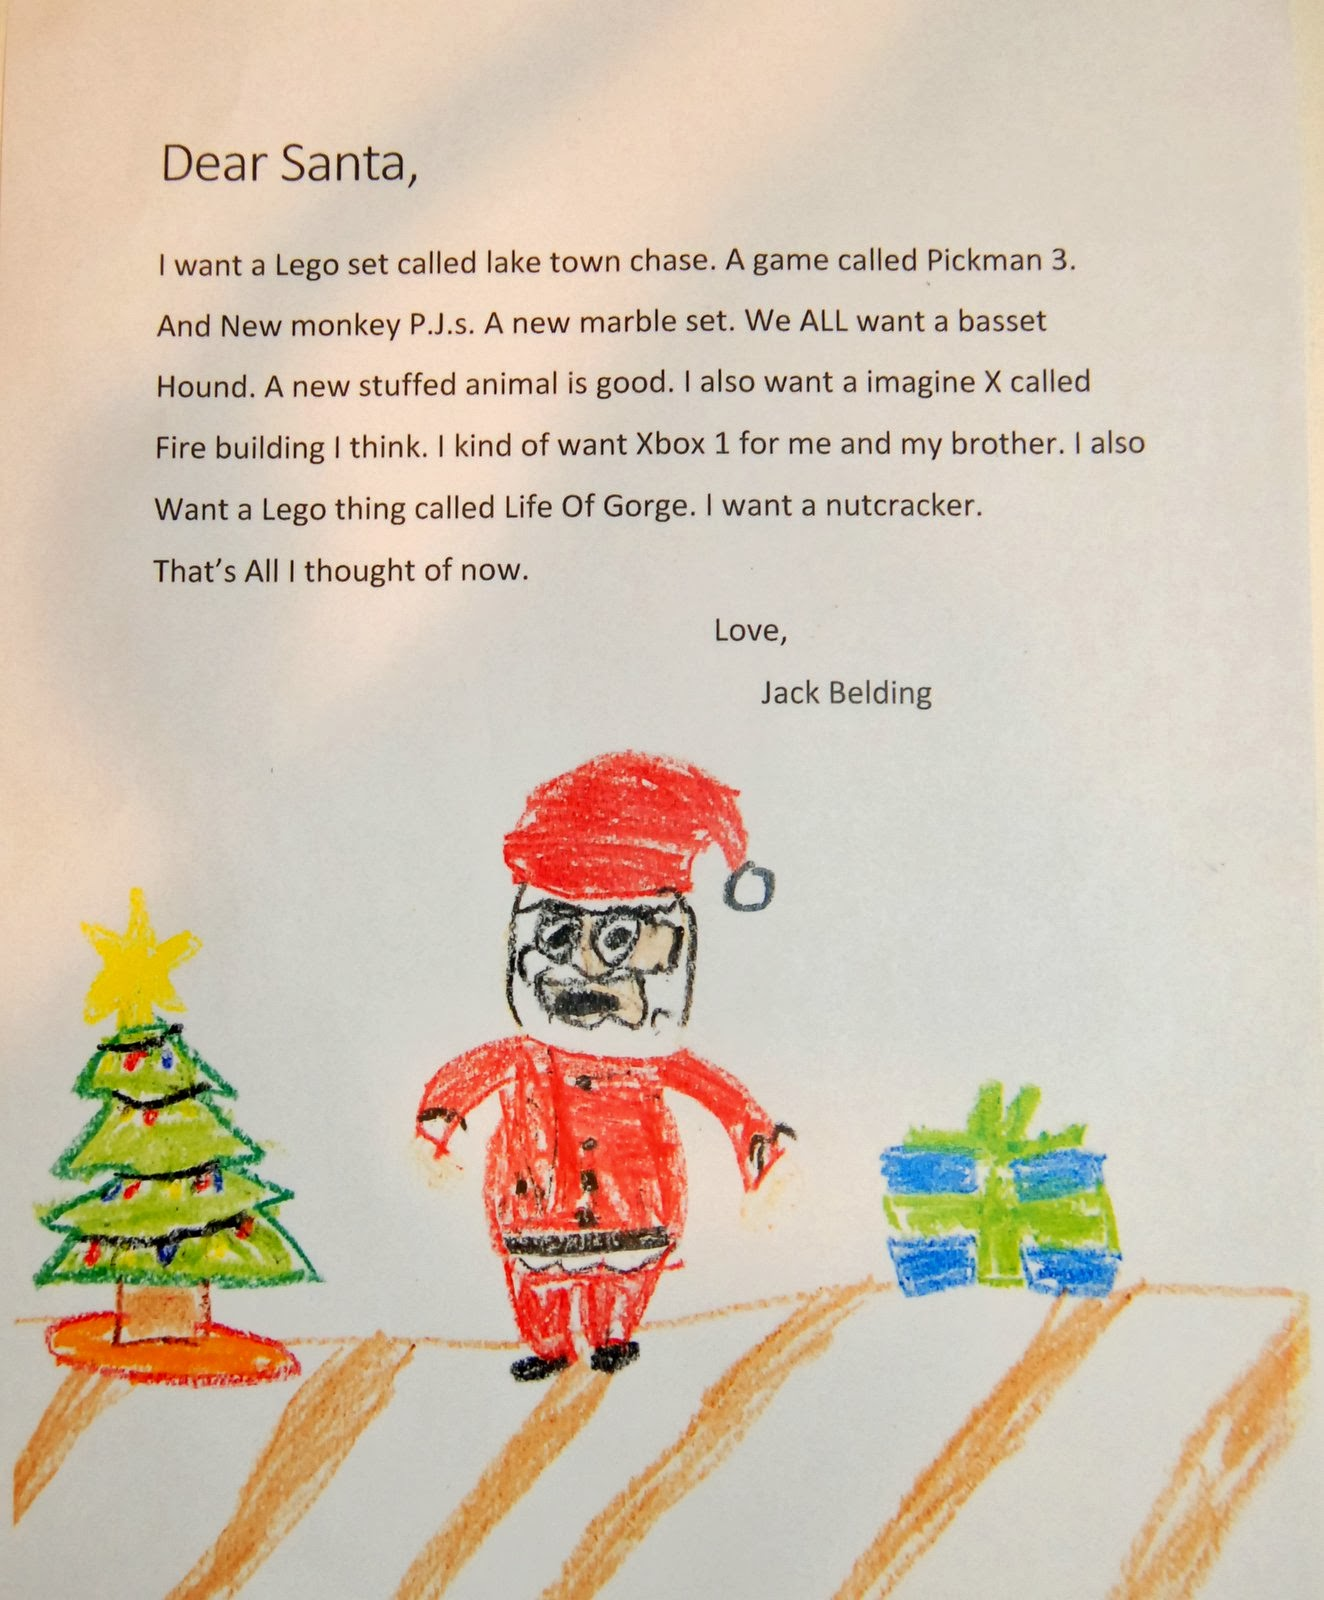 A Blonde And 3 Boys: A Letter To Santa